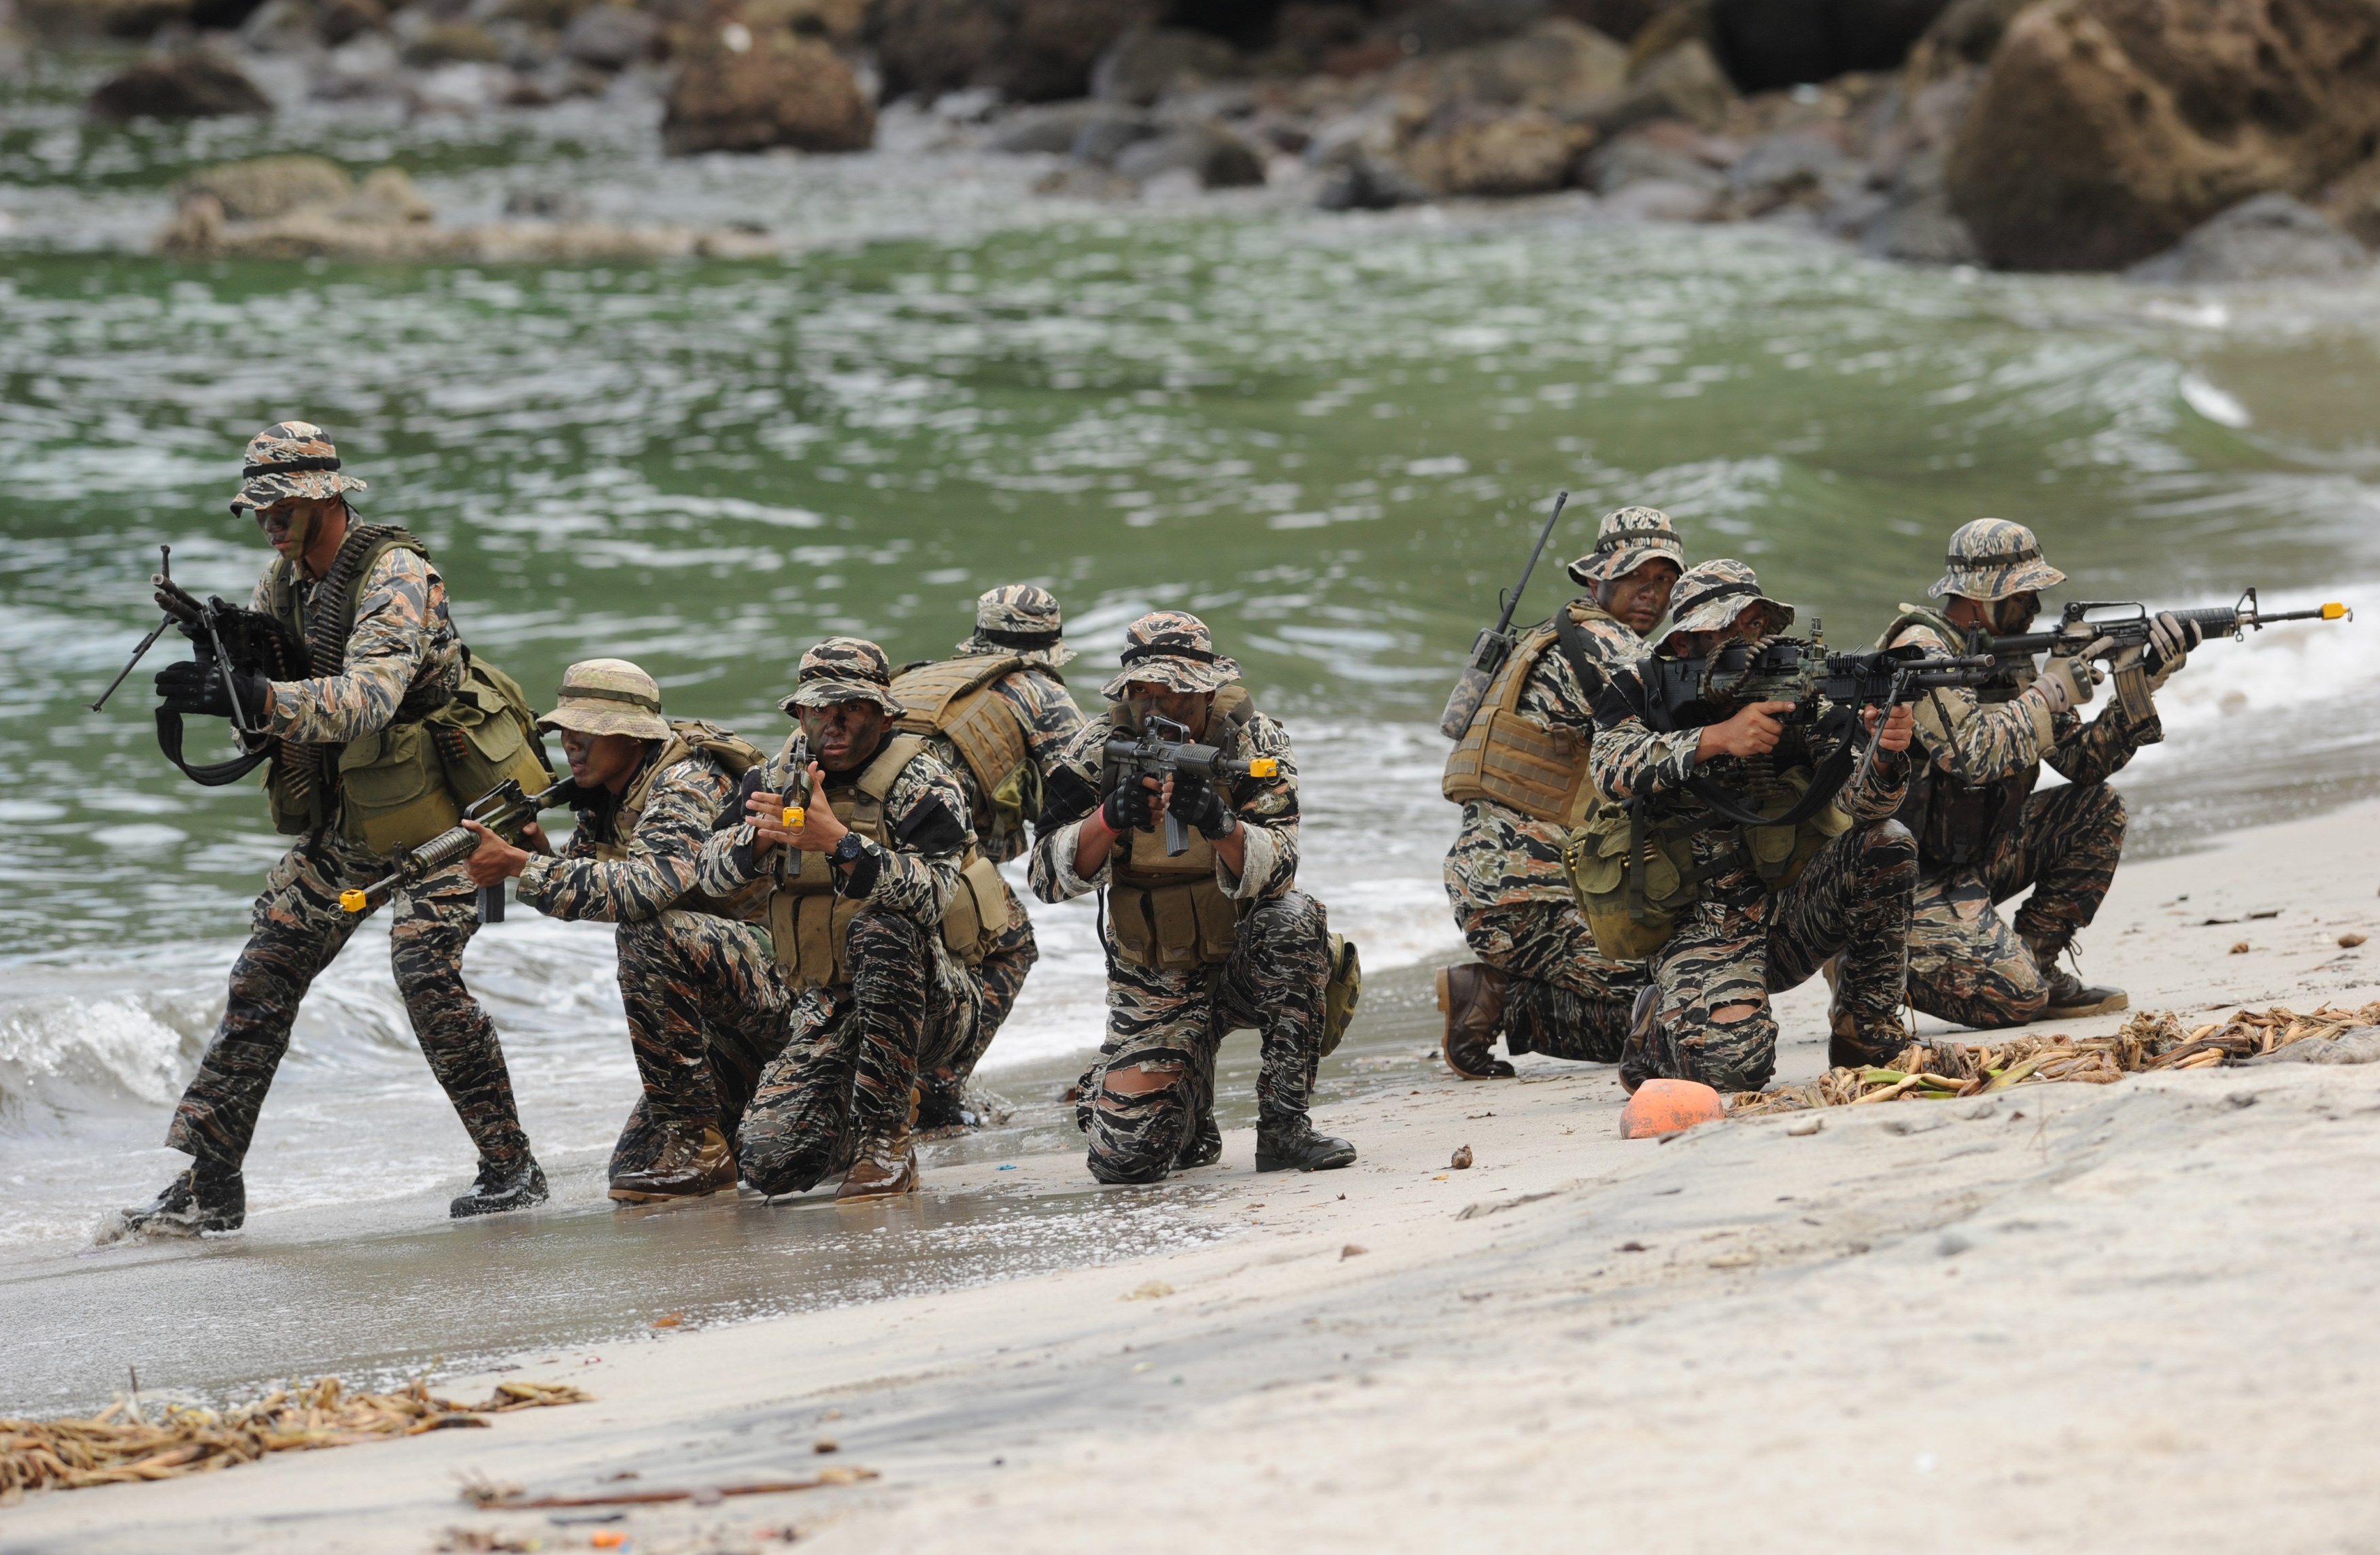 Members of the Philippine Navy Special Operations Group (NAVSOG) take their positions as they simulate the rescue of a hostage victim as part of an amphibious raid and special operations exercise by the navy at a marine training base in the town of Ternate in Cavite province, the Philippines, on Sept. 24, 2015, days after gunmen abducted three foreigners and one Filipina from a luxury island resort on Samal island